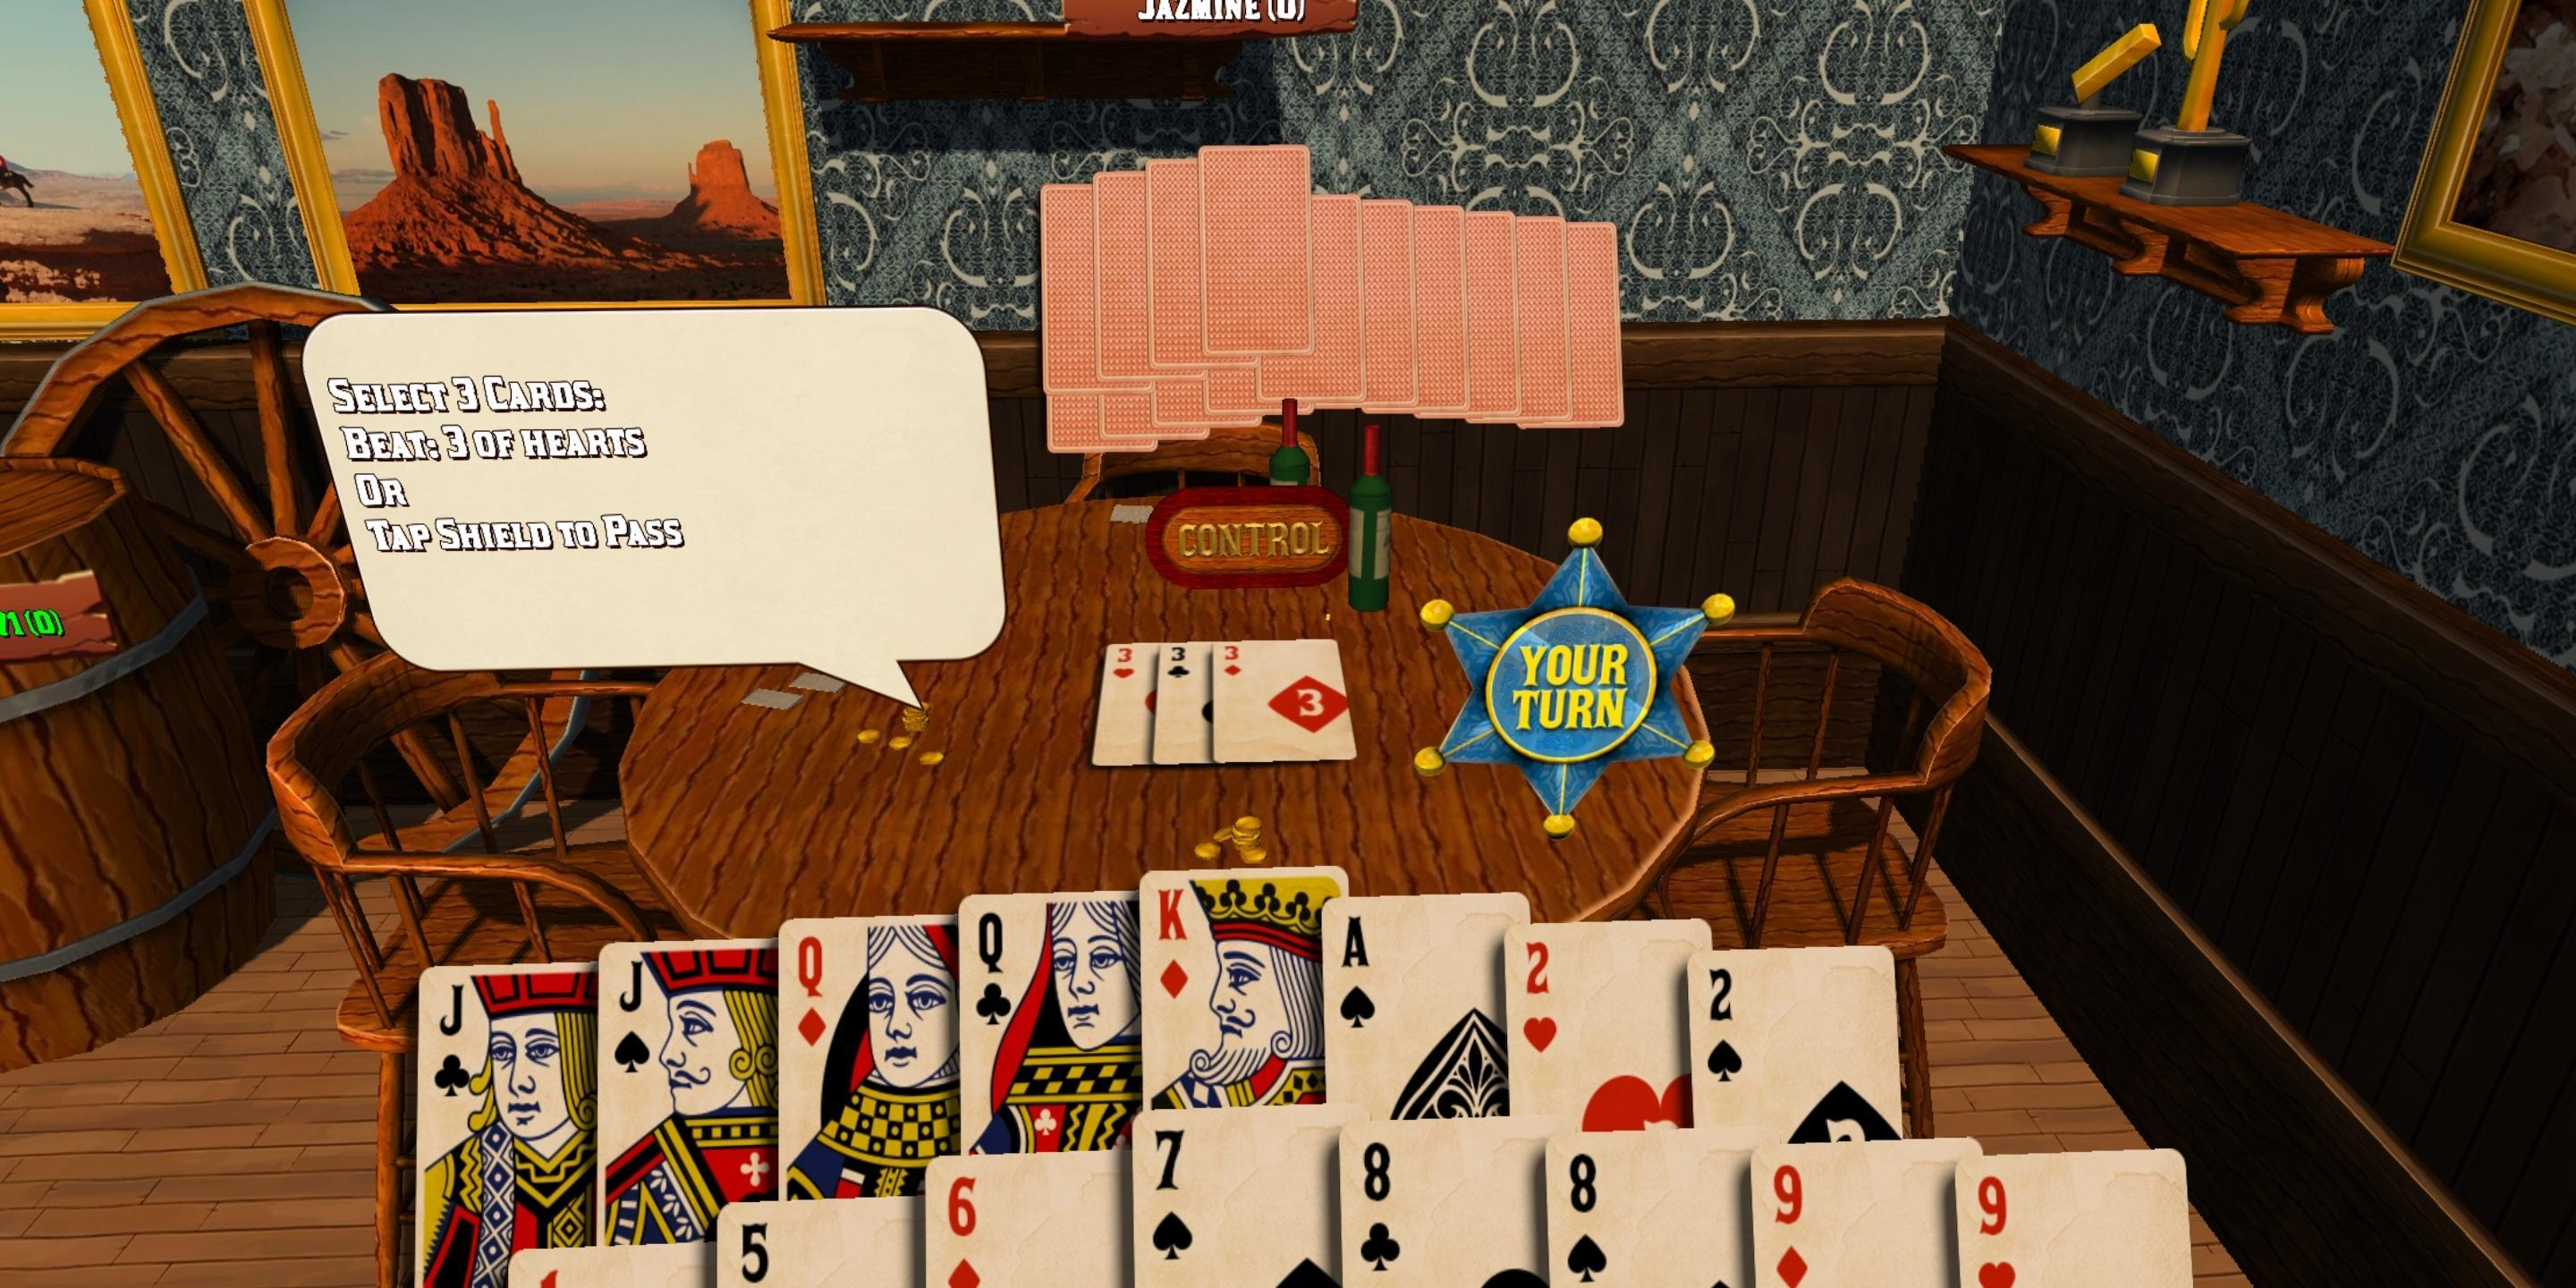 Card Room Deuces & Last Card, Playing Cards 1.2.3 Screenshot 3